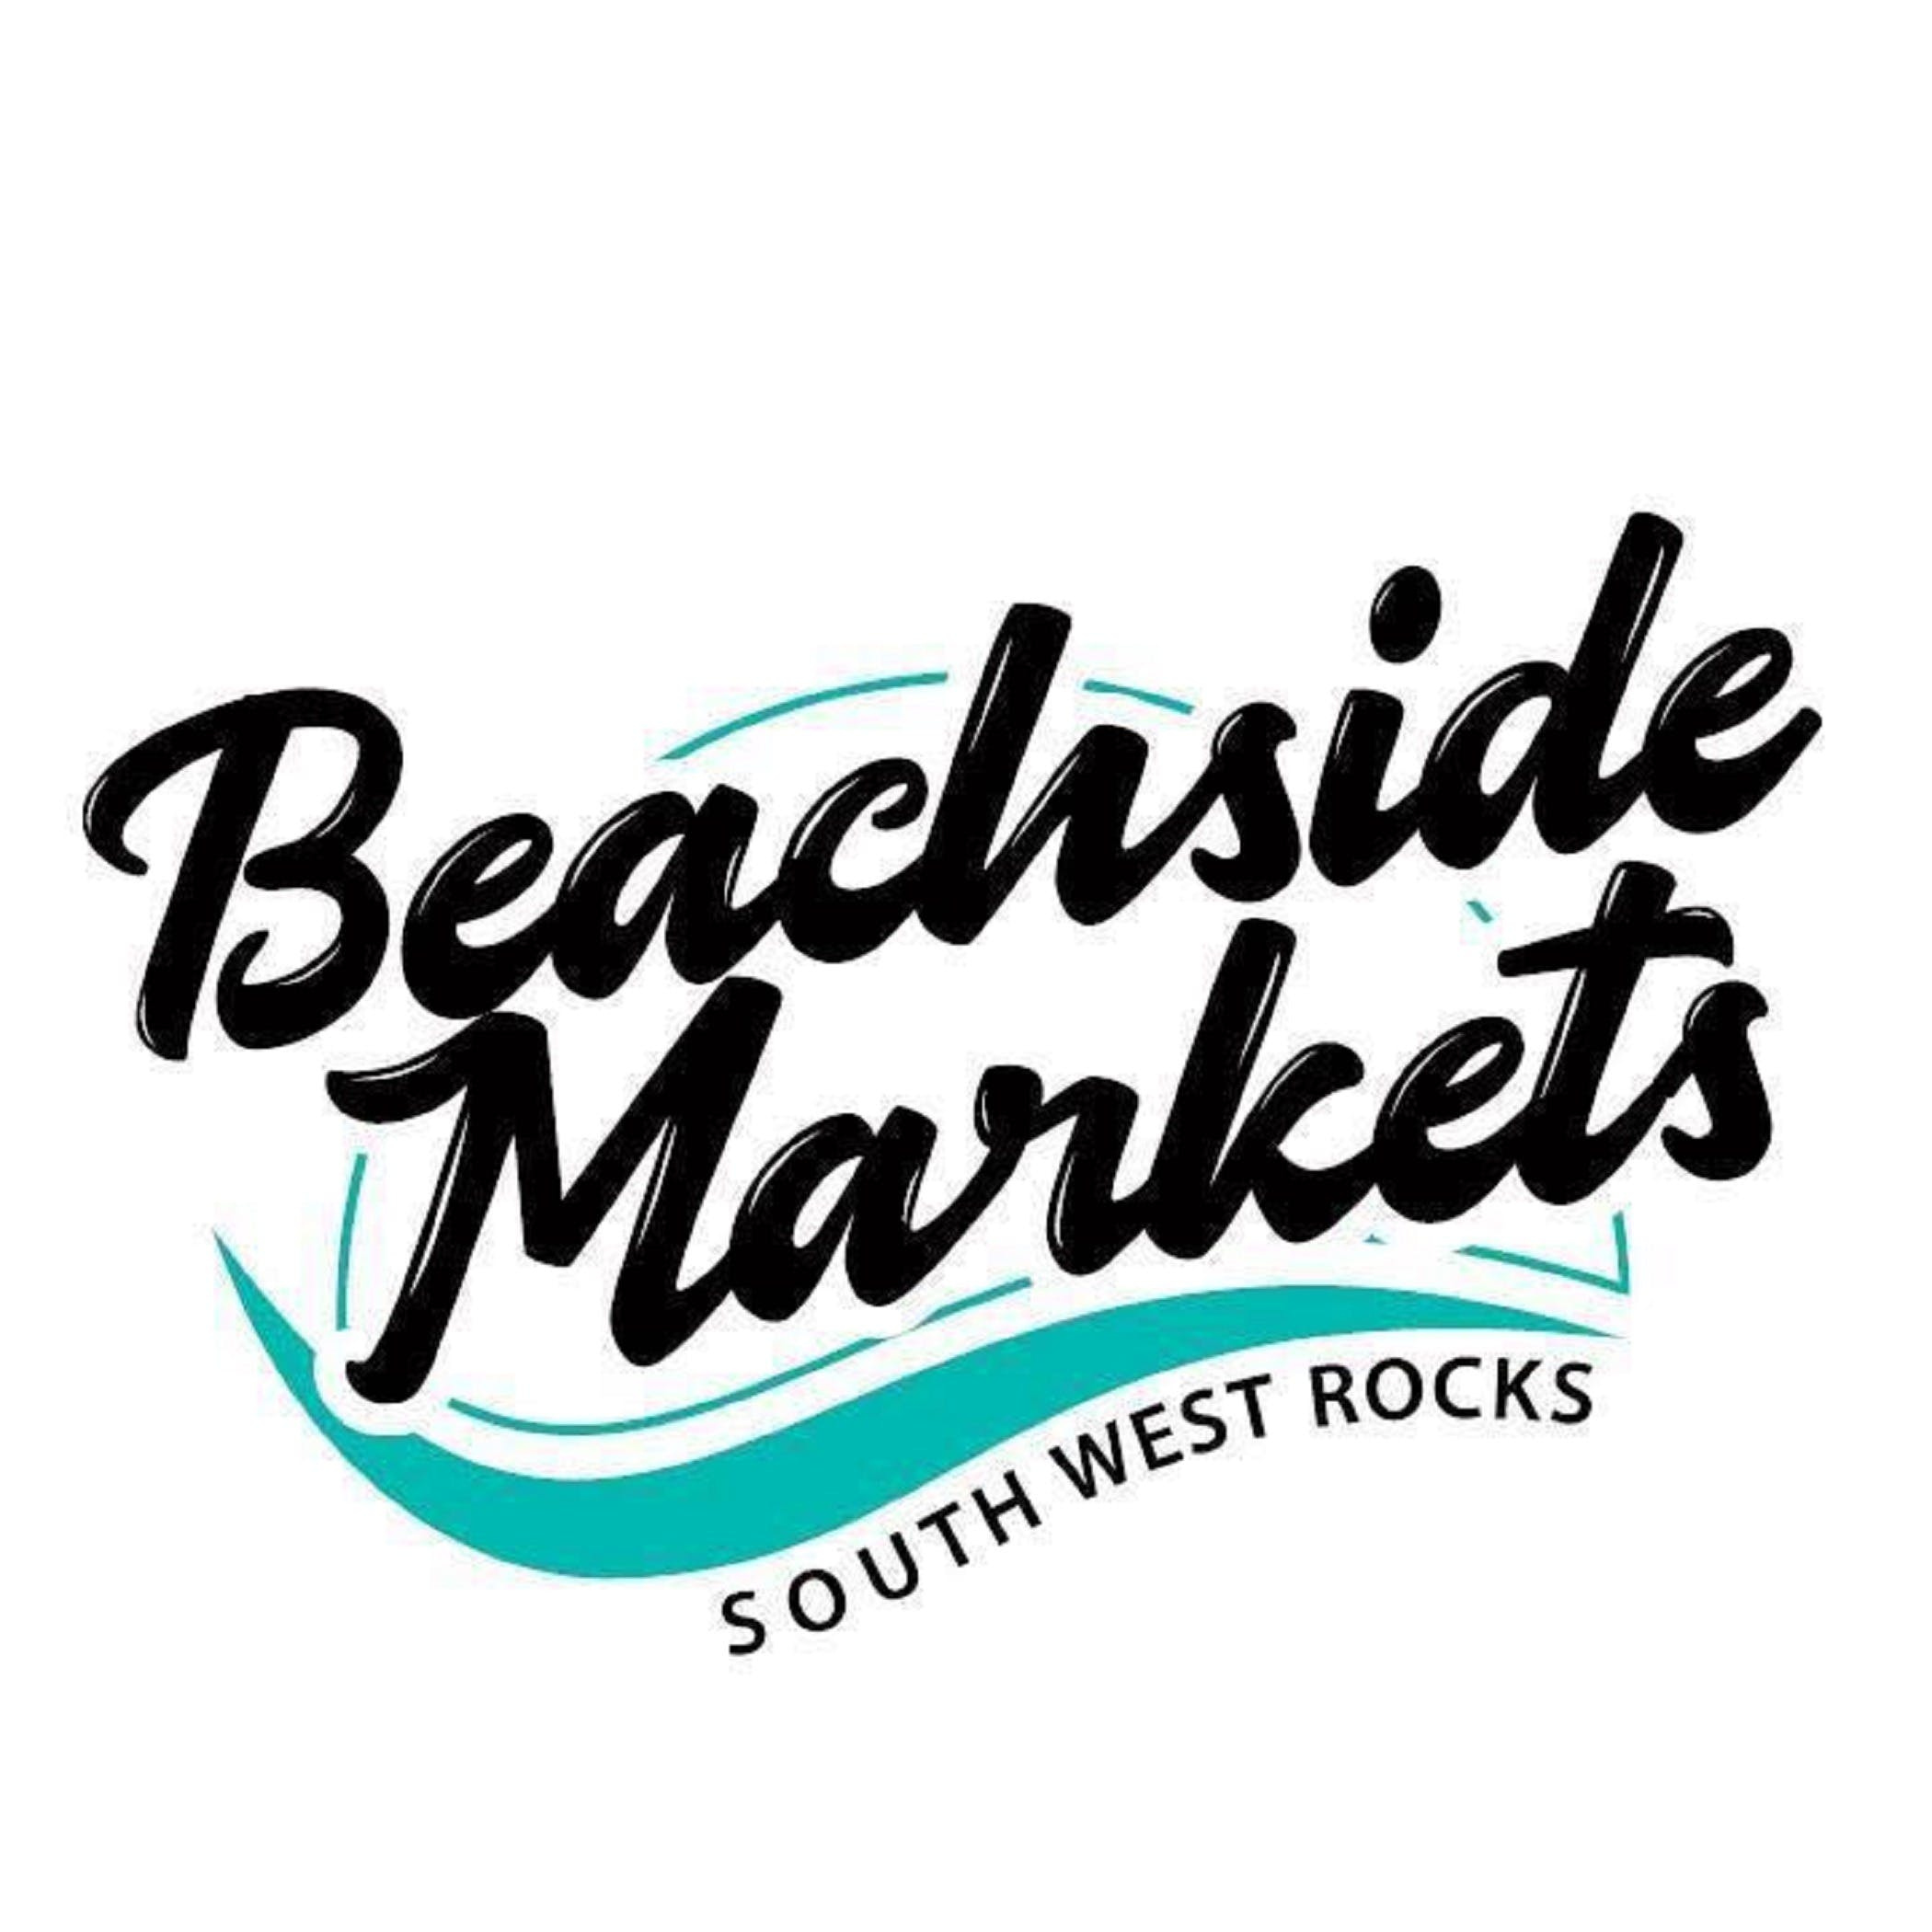 Beachside Markets South West Rocks - Port Augusta Accommodation